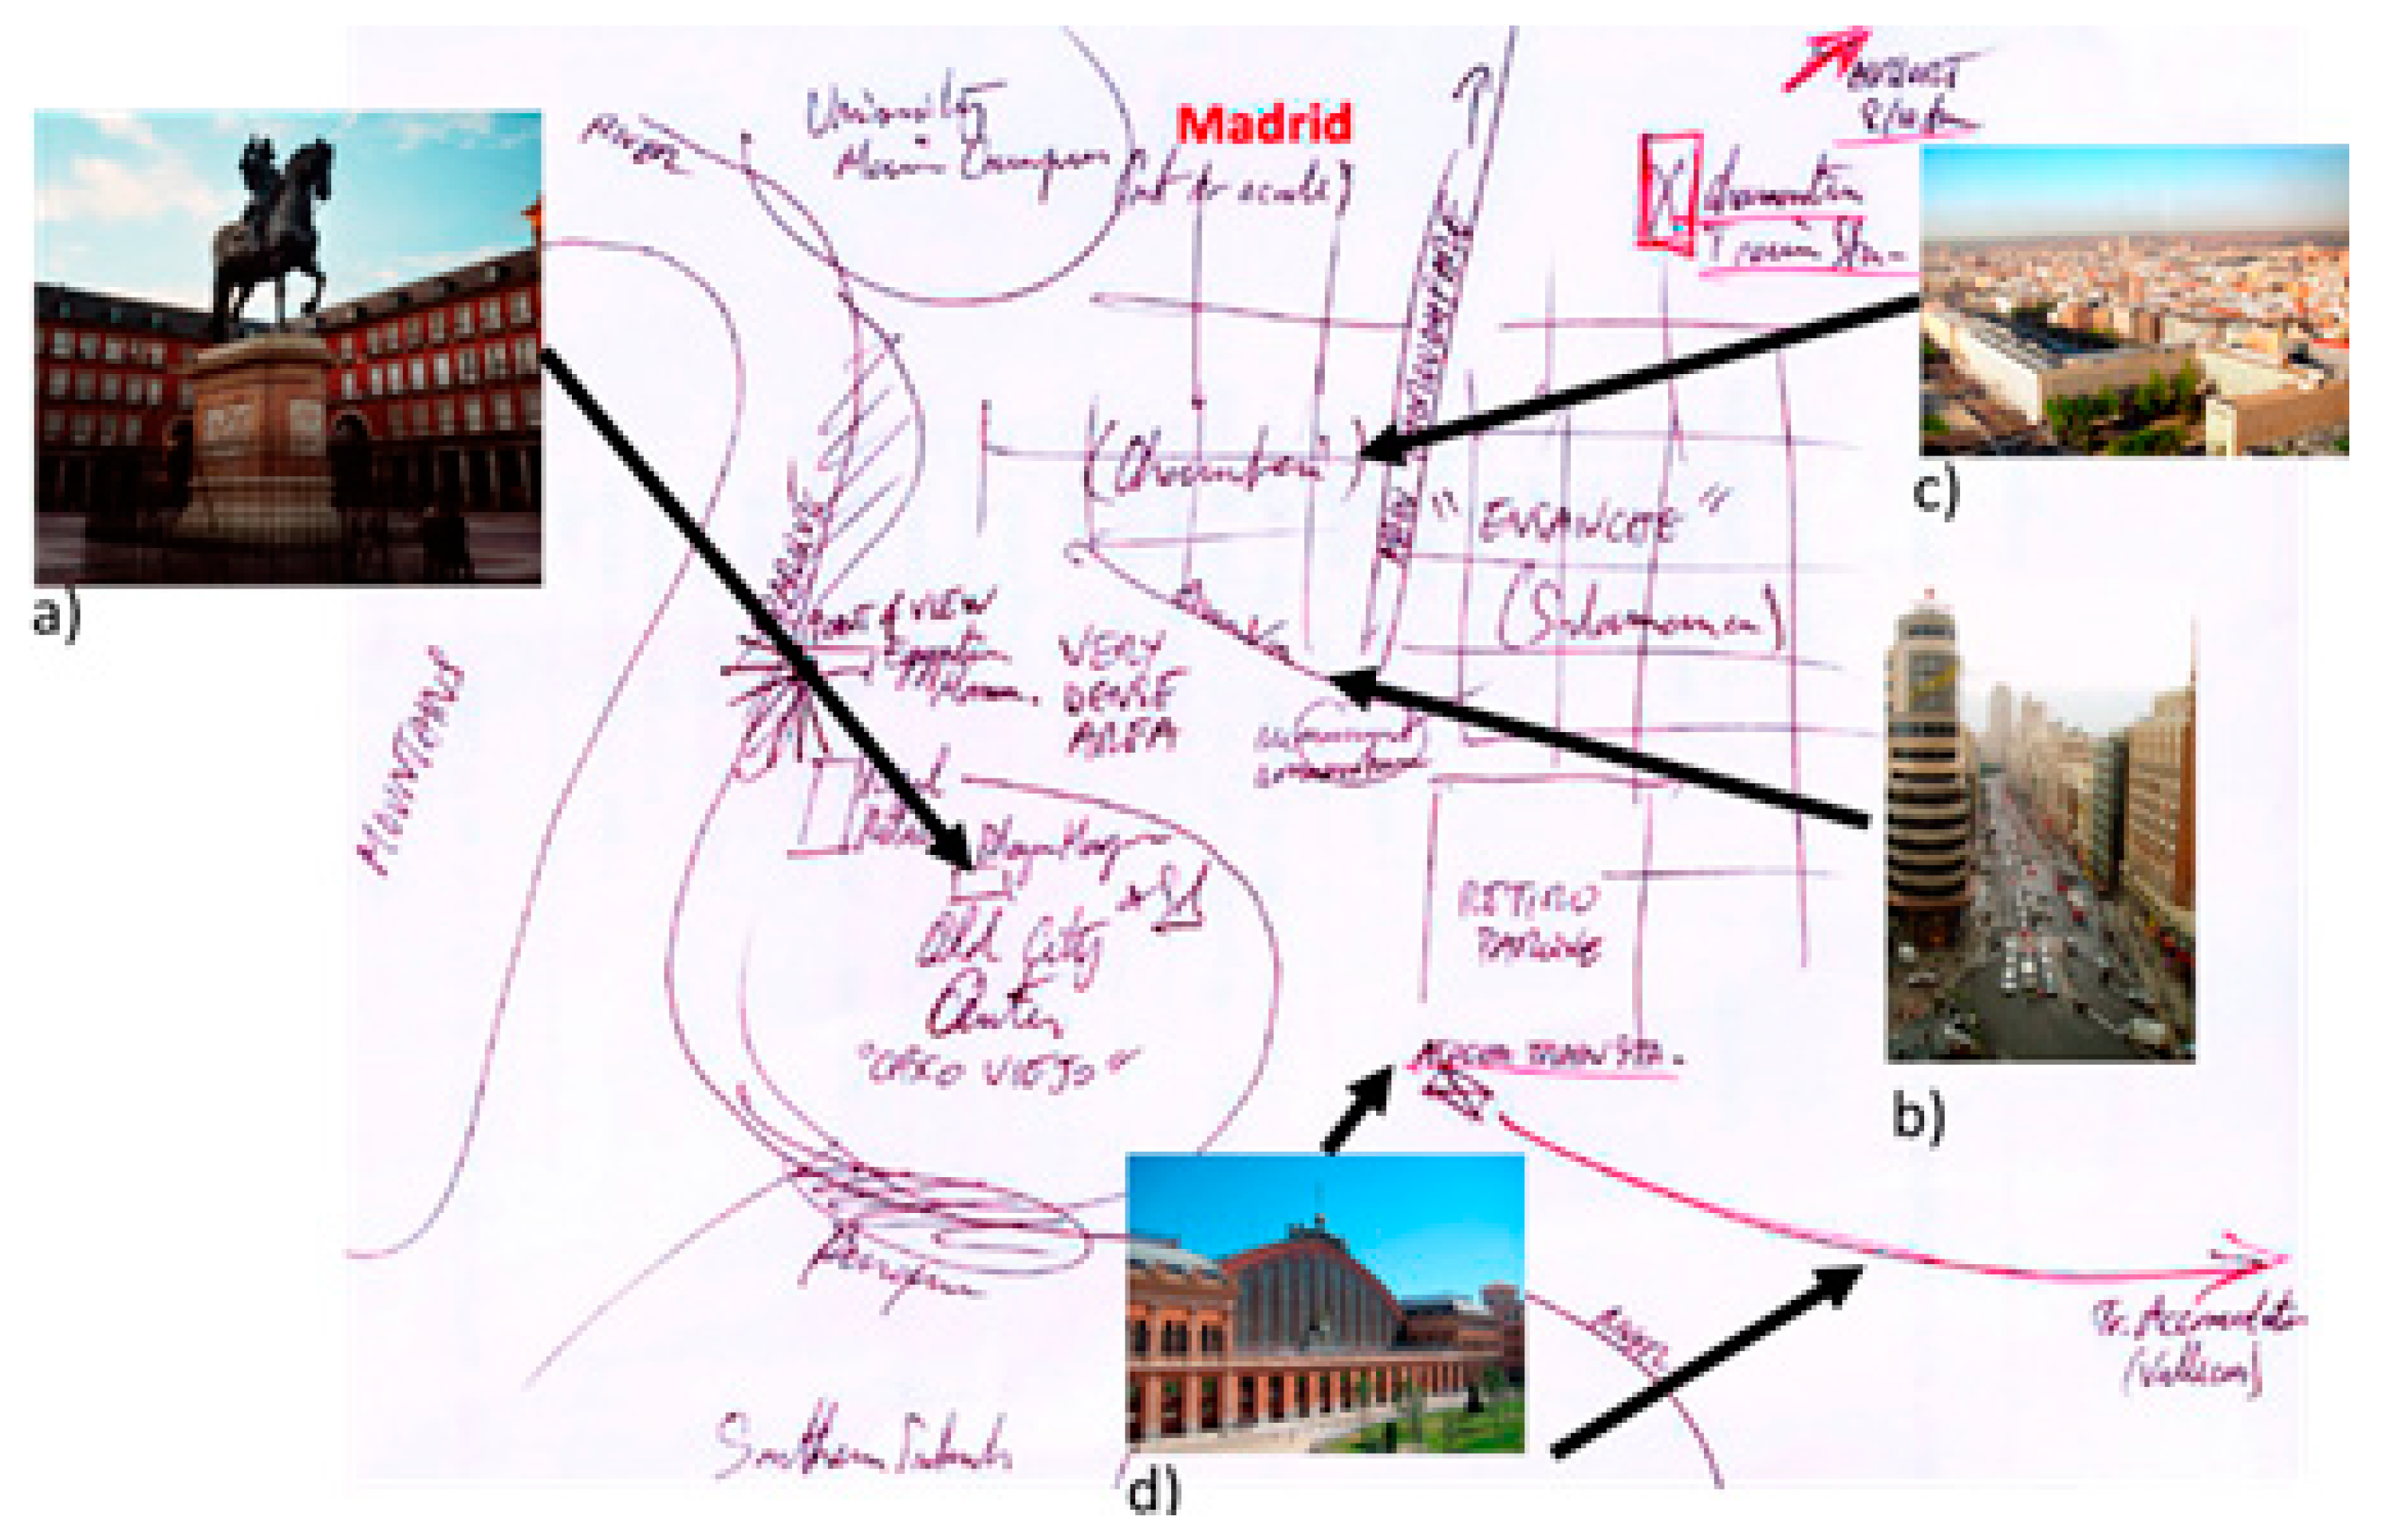 Madrid Spain Map Tourist.Ijgi Free Full Text Using The Spatial Knowledge Of Map Users To